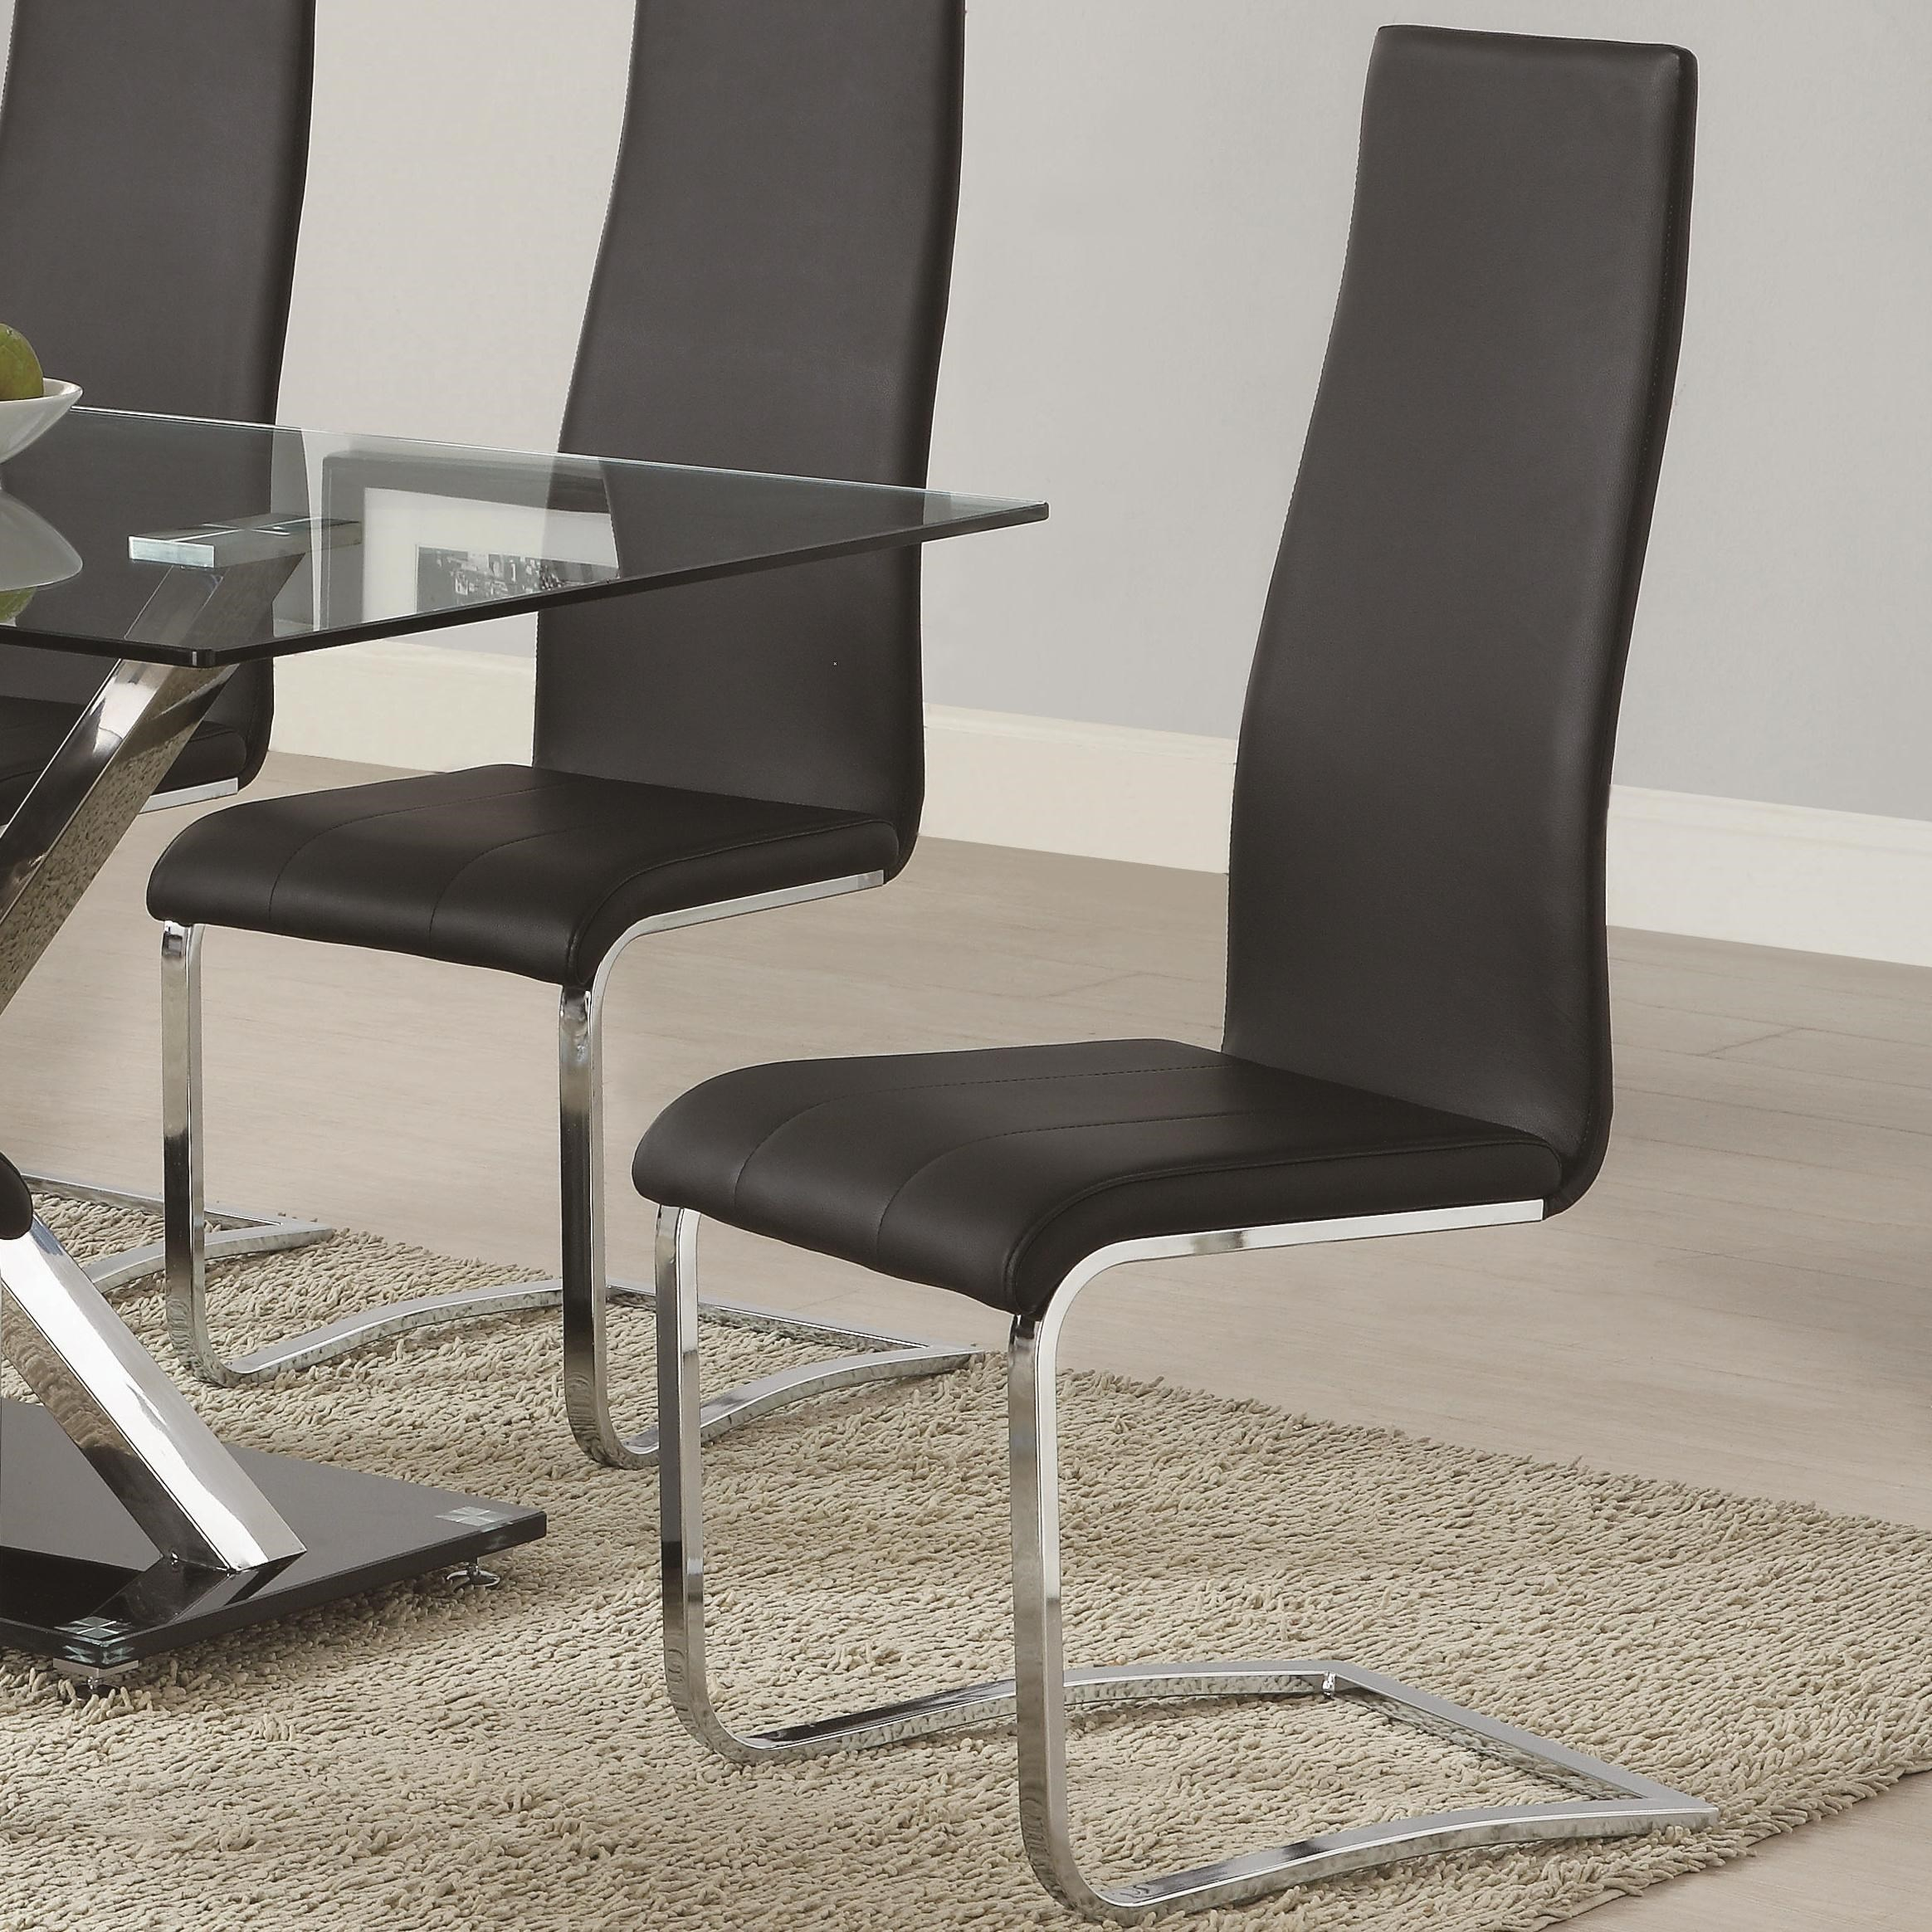 Black Faux Leather Dining Chair with Chrome Legs